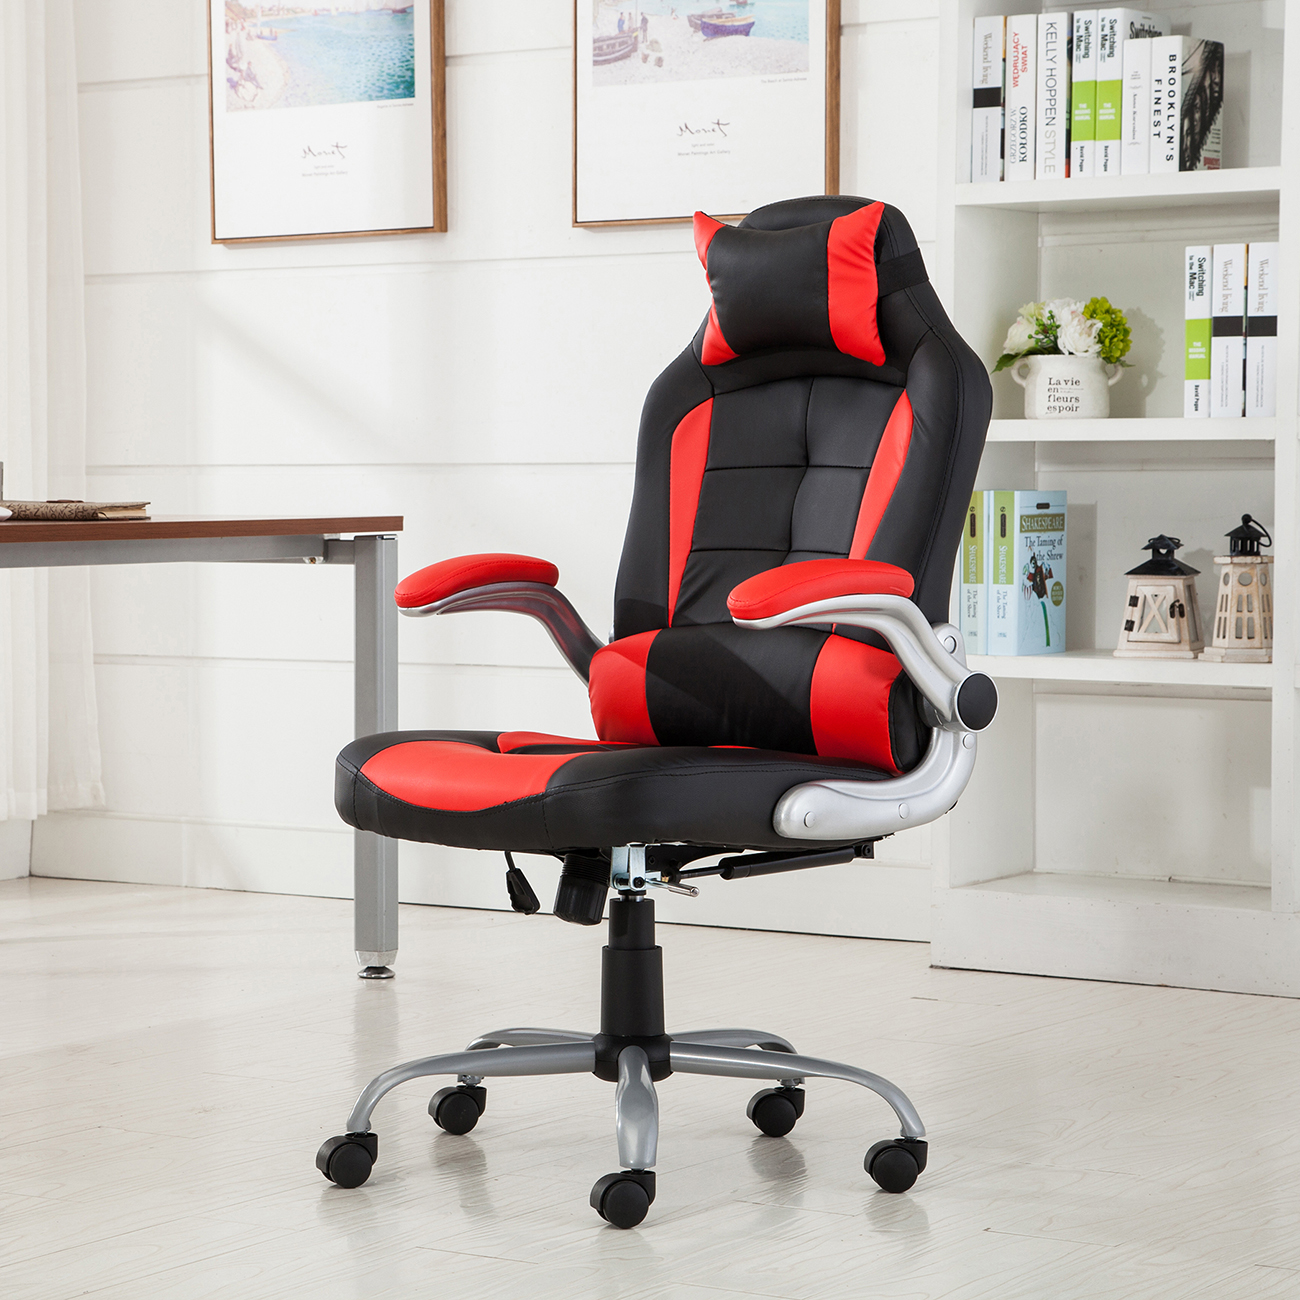 stool desk comfortable zero gravity recliner with executive tremendous top artistry chair reclining office footrest